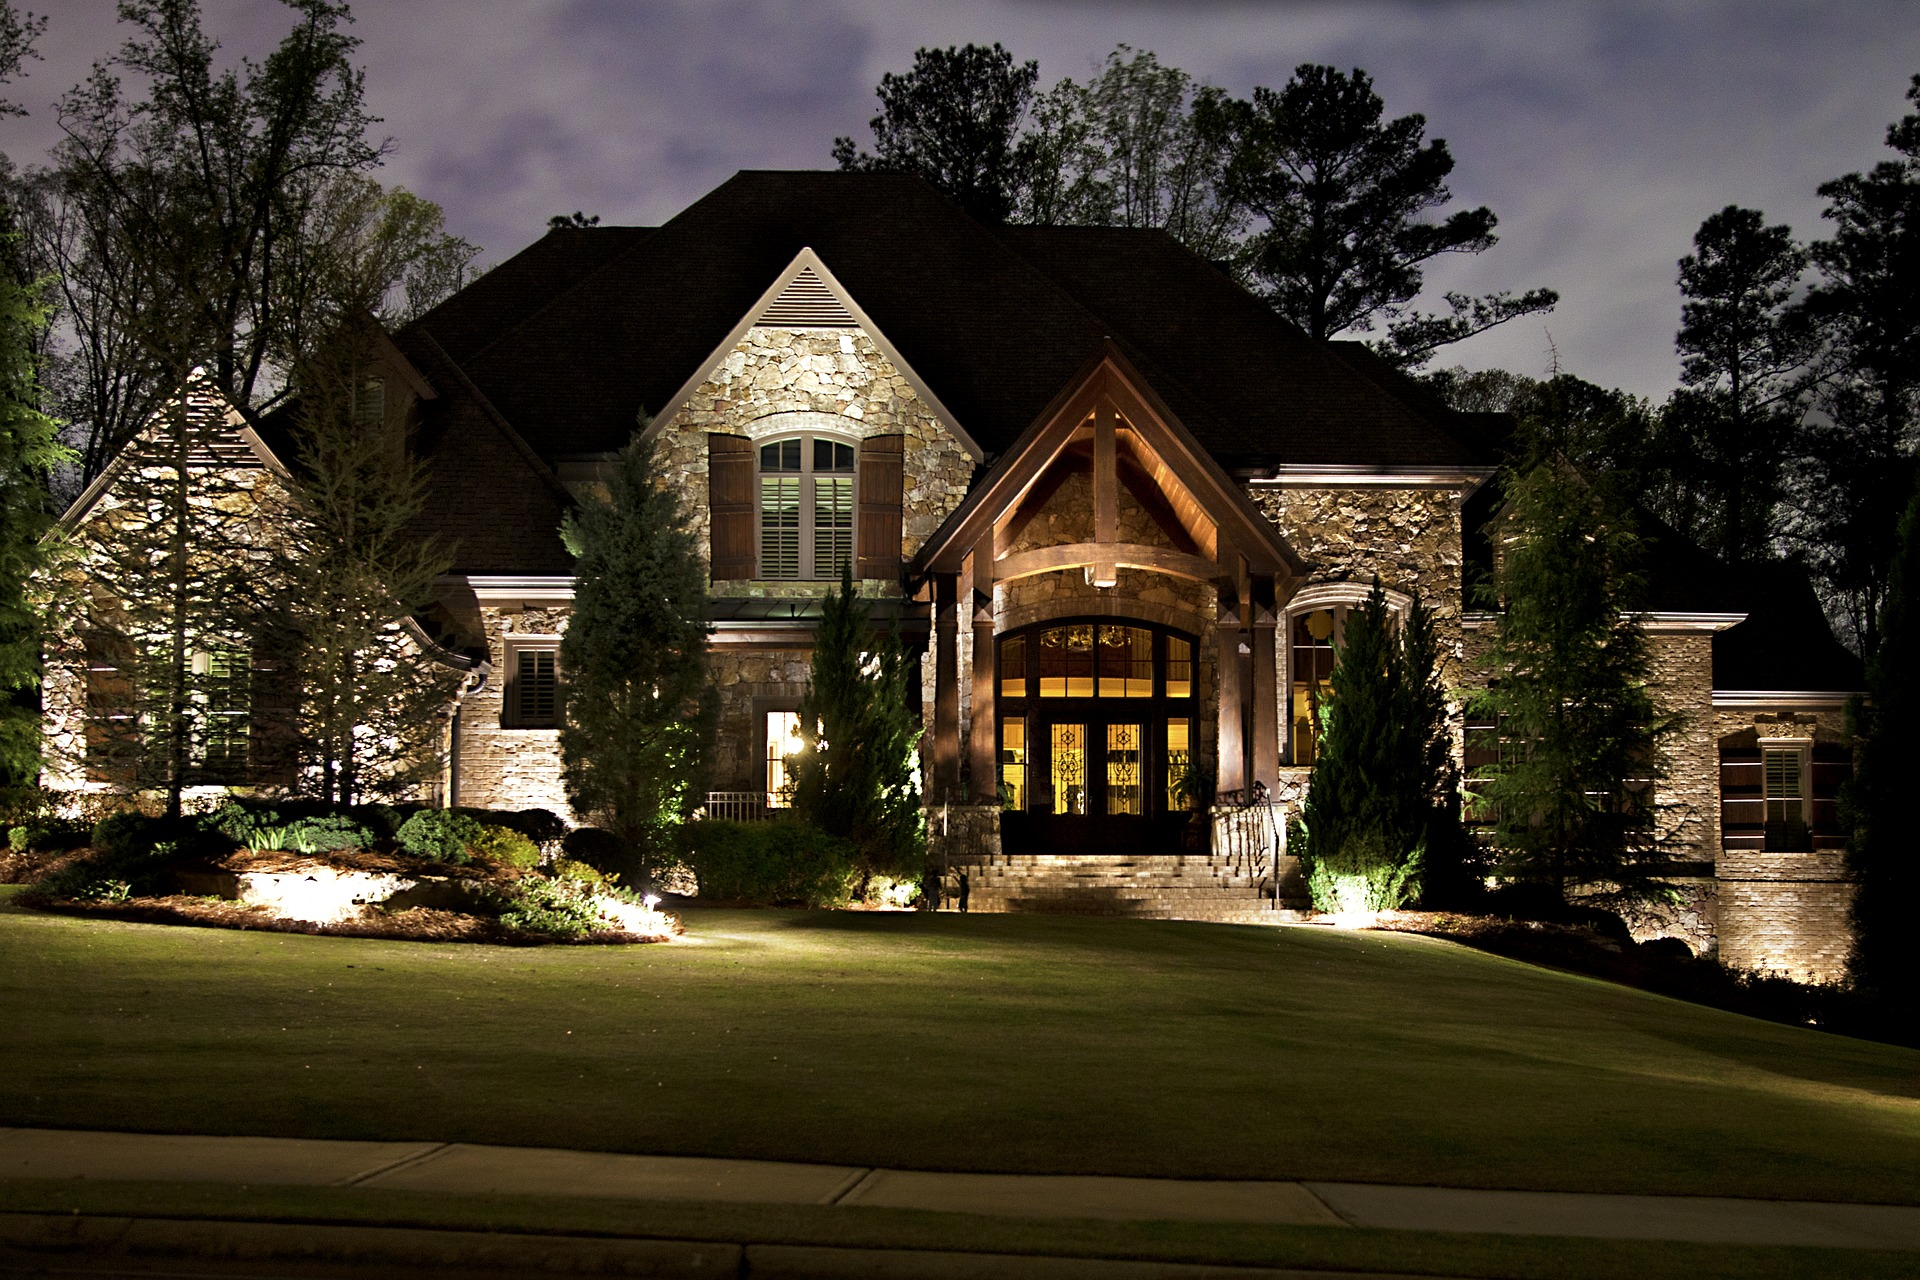 Low Voltage Outdoor Lighting Equipment in Bala Cynwyd, PA